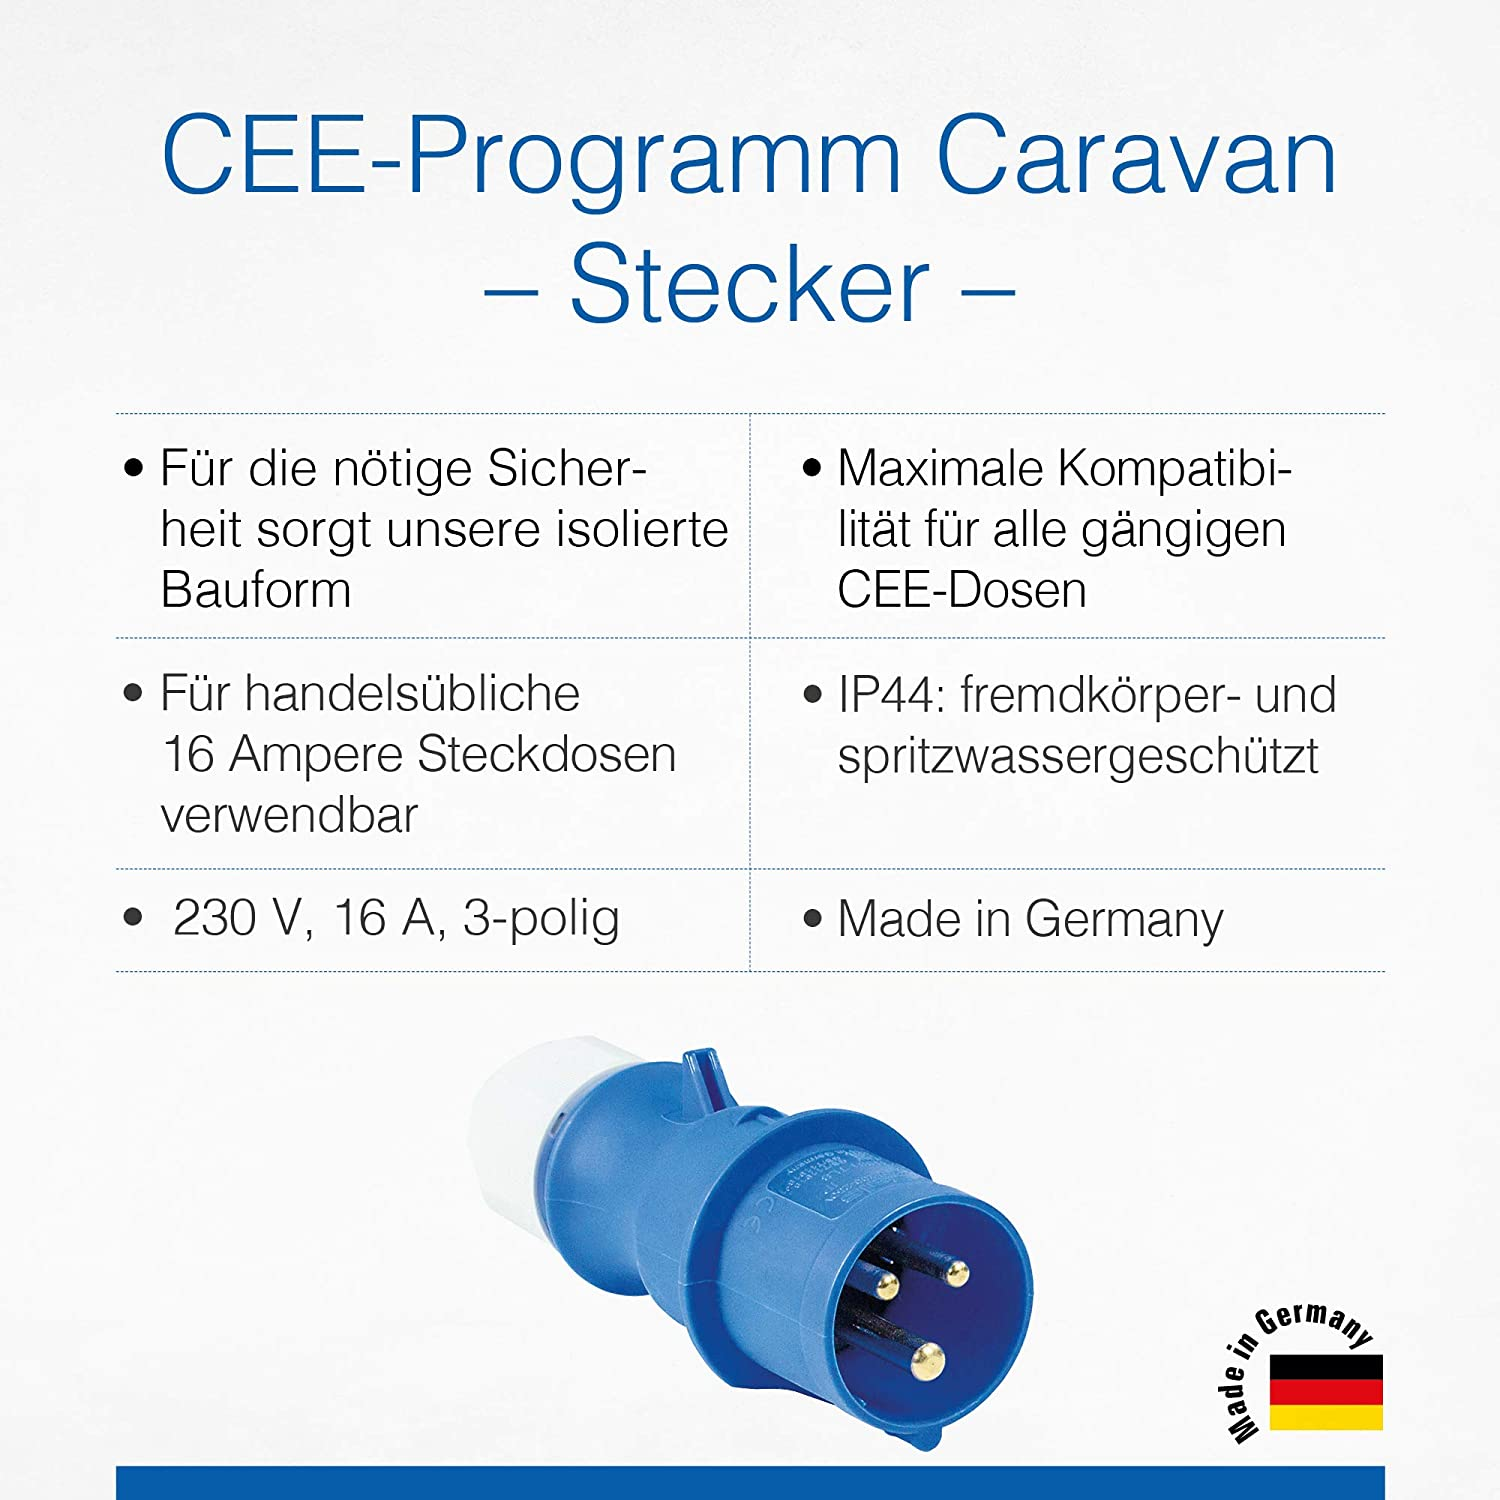 As Schwabe Cee Plug Caravan 230 V 16 A Camping Plug With Screw Connections Submersible Plug For Caravan And Motorhome Ideal For Outdoor Use Ip44 Made In Germany Blue I 60470 Baumarkt